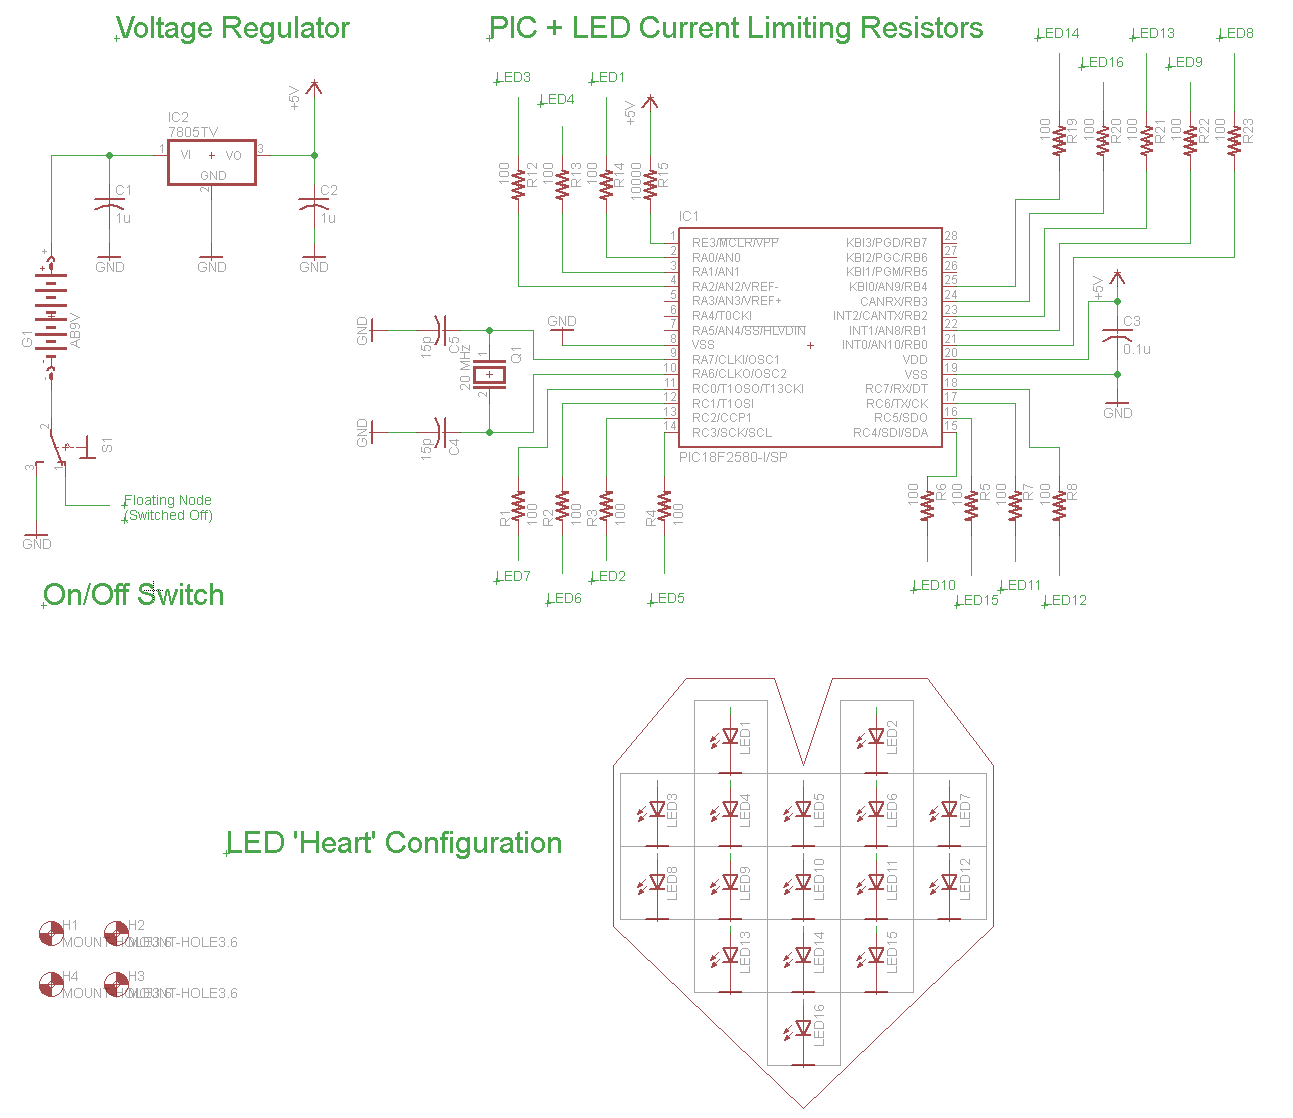 Led Heart Pwm Fading Schematic Pcb Layout Pyroelectro News Circuit With View Full